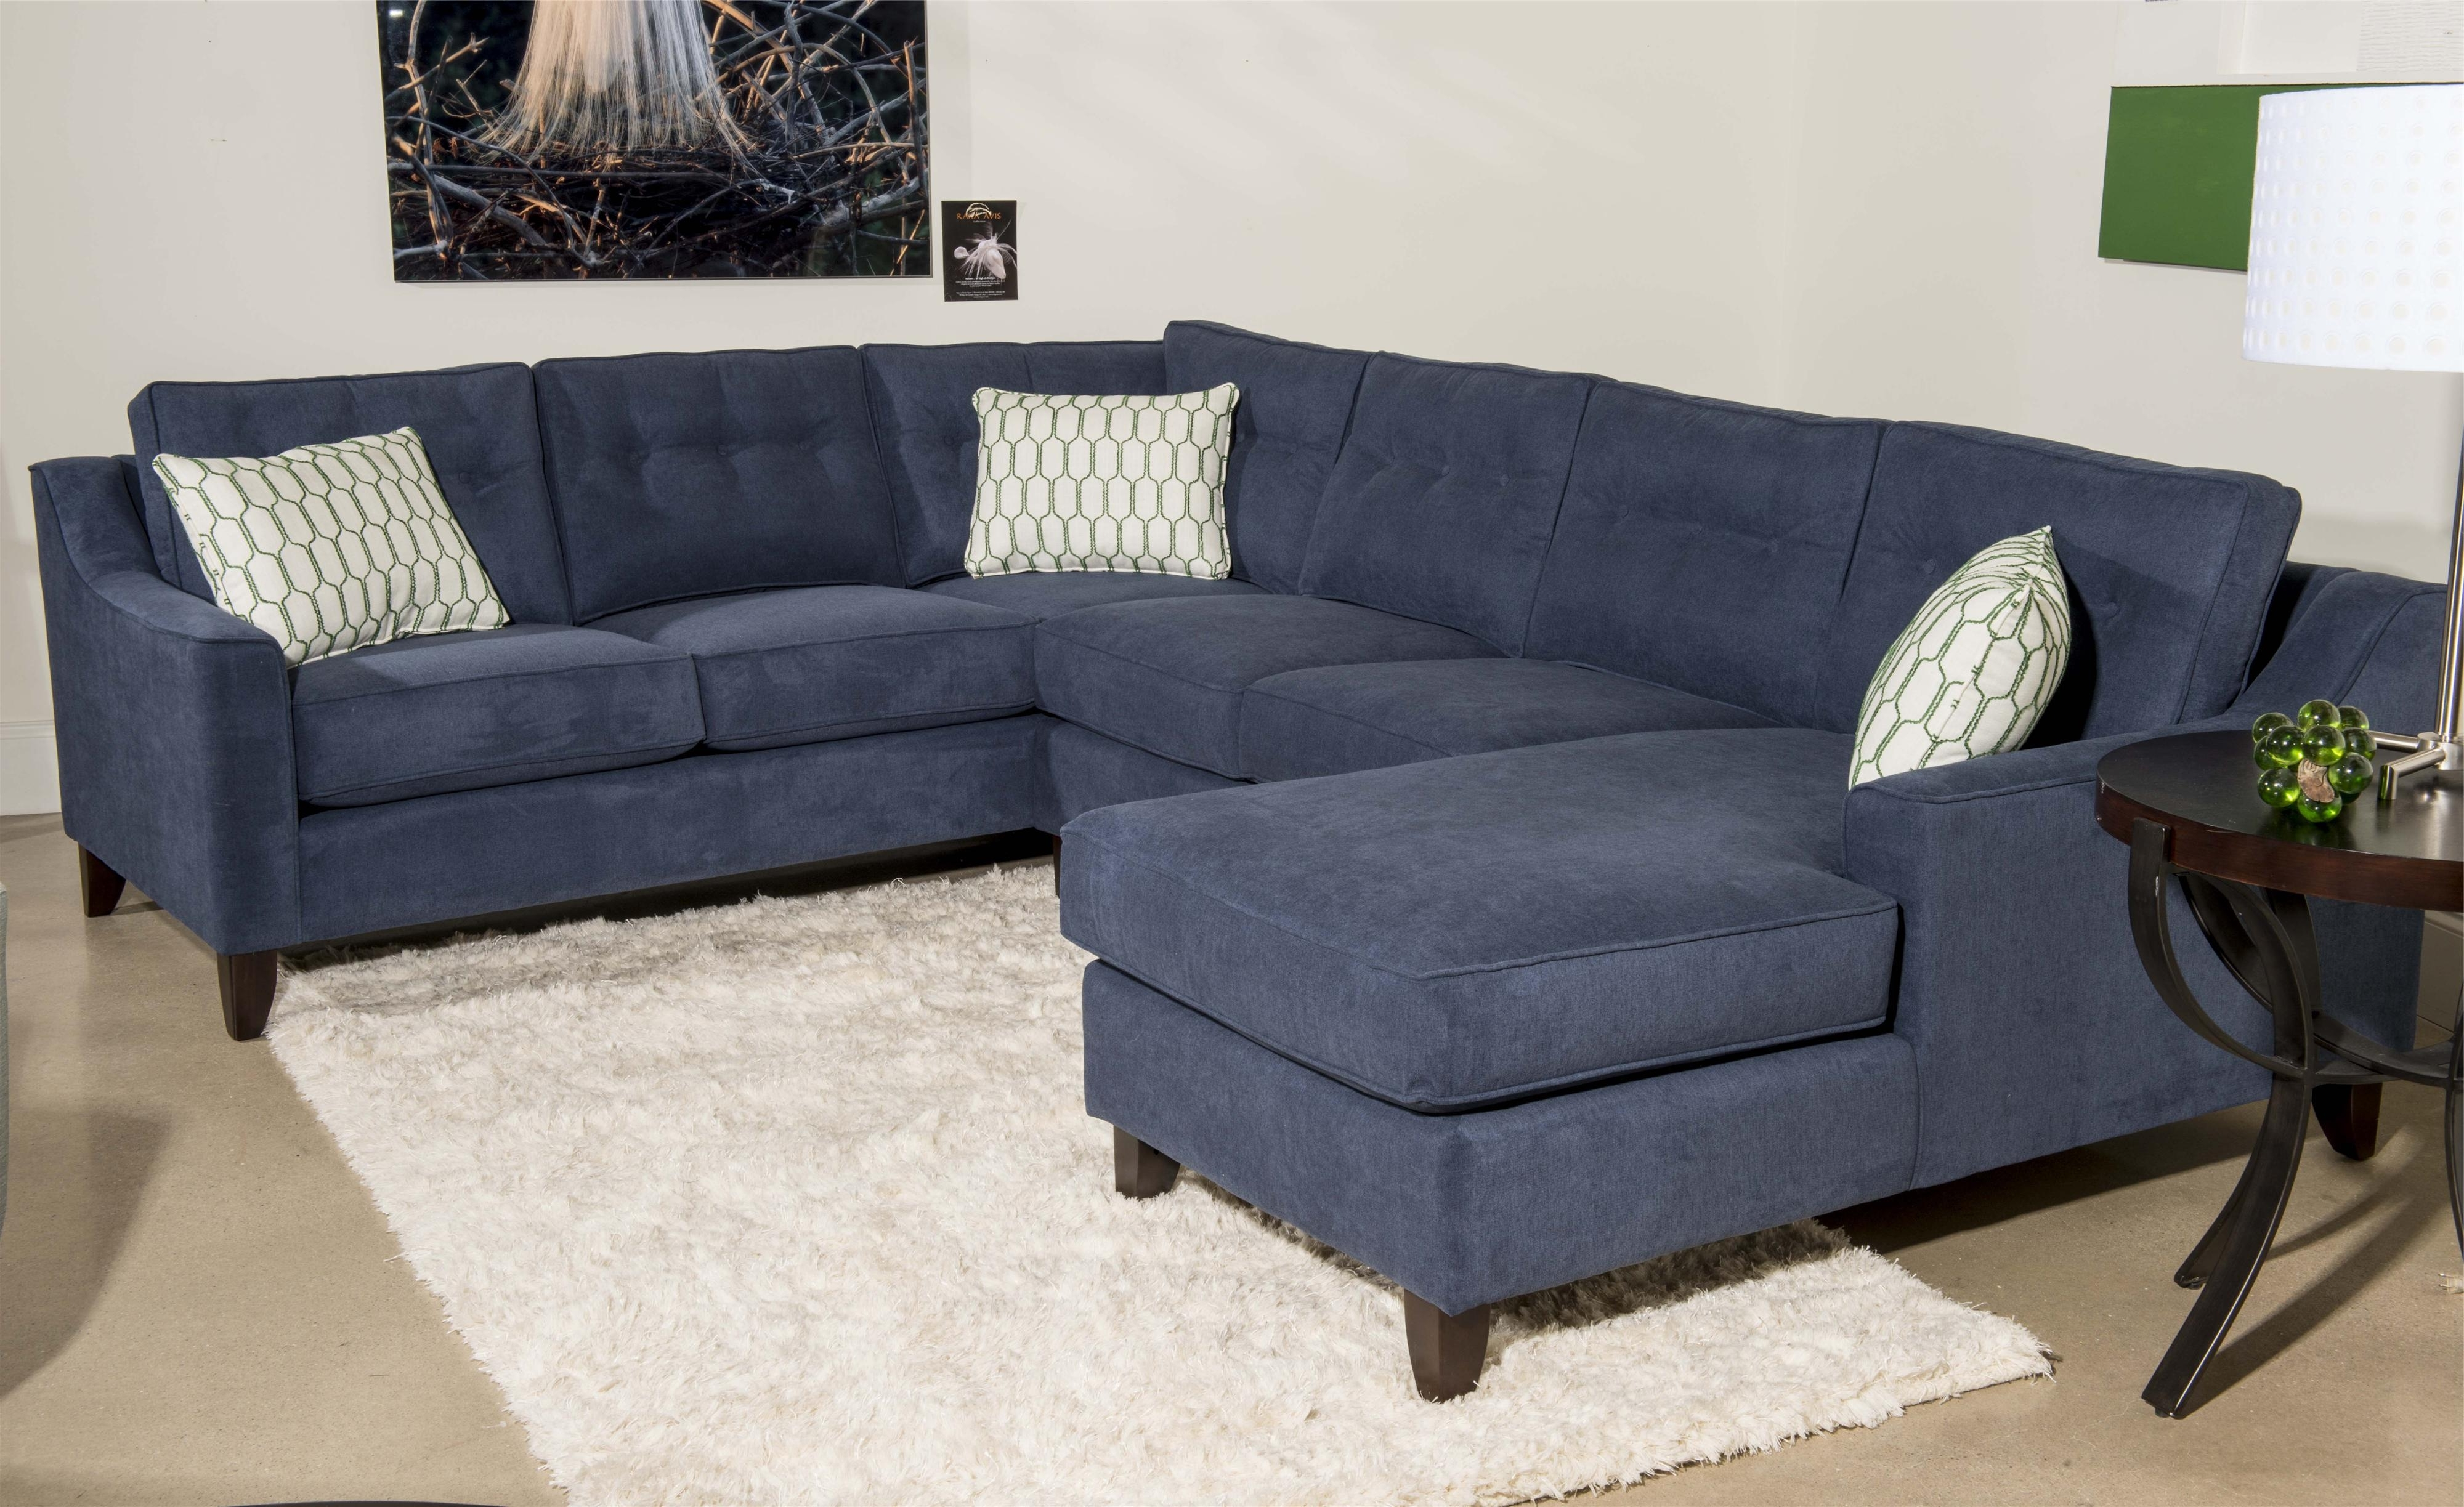 Current 3 Piece Sectional Sofas With Chaise Throughout Contemporary 3 Piece Sectional Sofa With Chaiseklaussner (View 6 of 15)